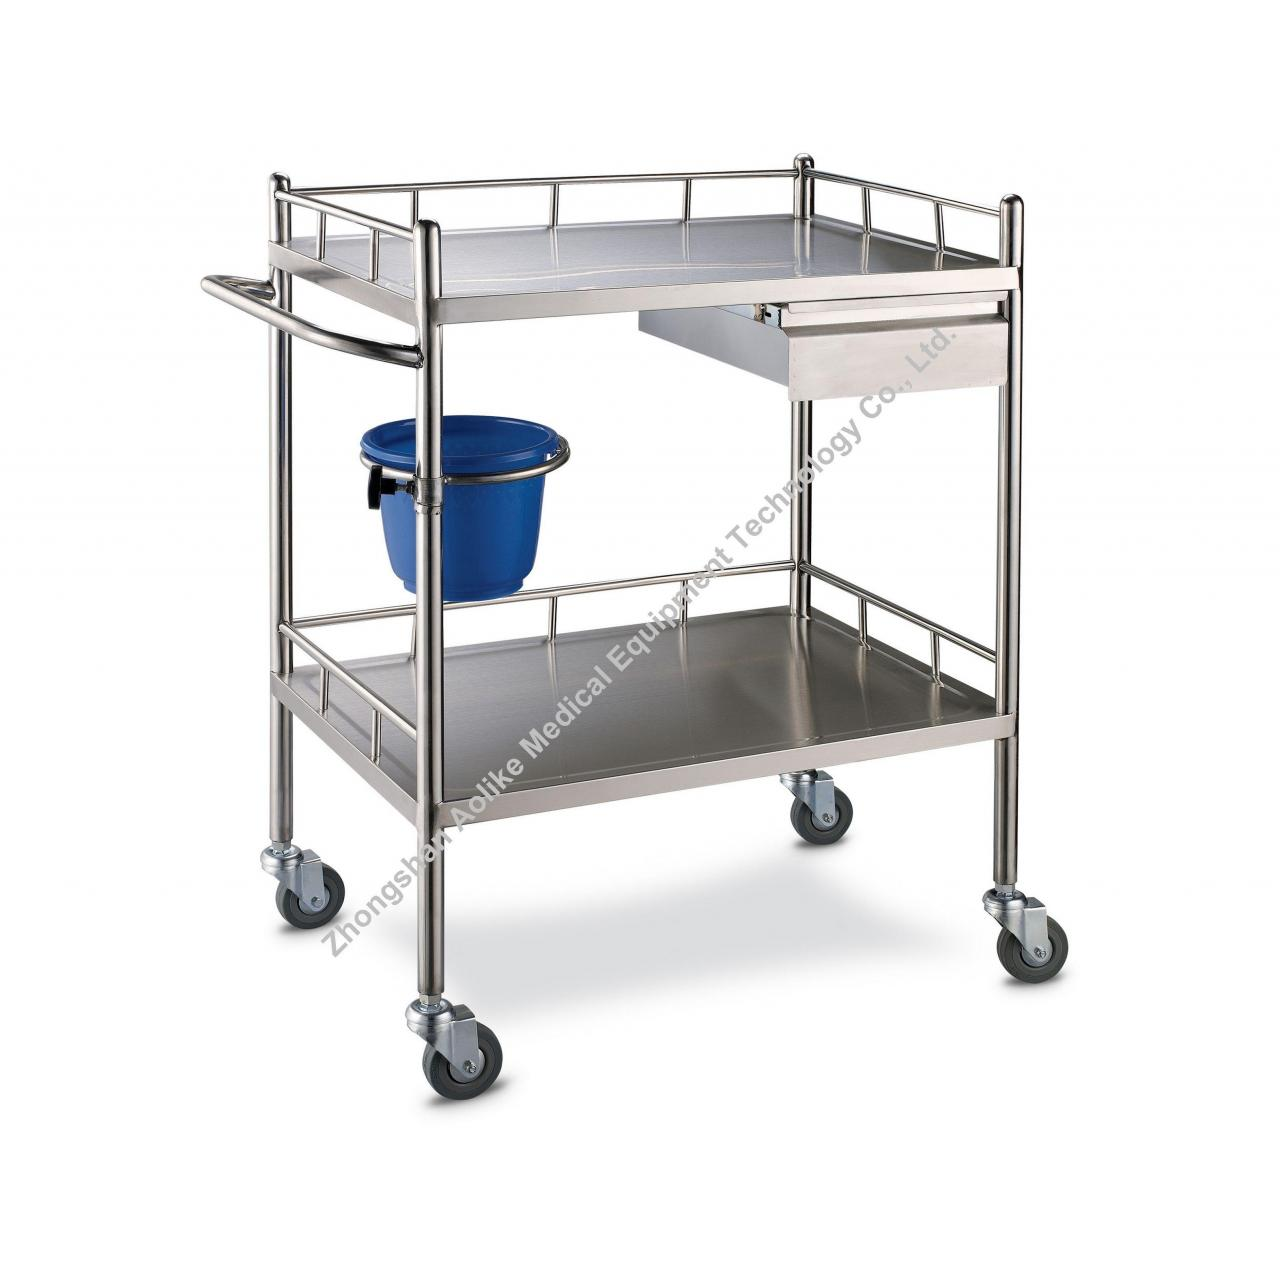 Quality Nursing Carts Stainless steel therapeutic Cart for sale